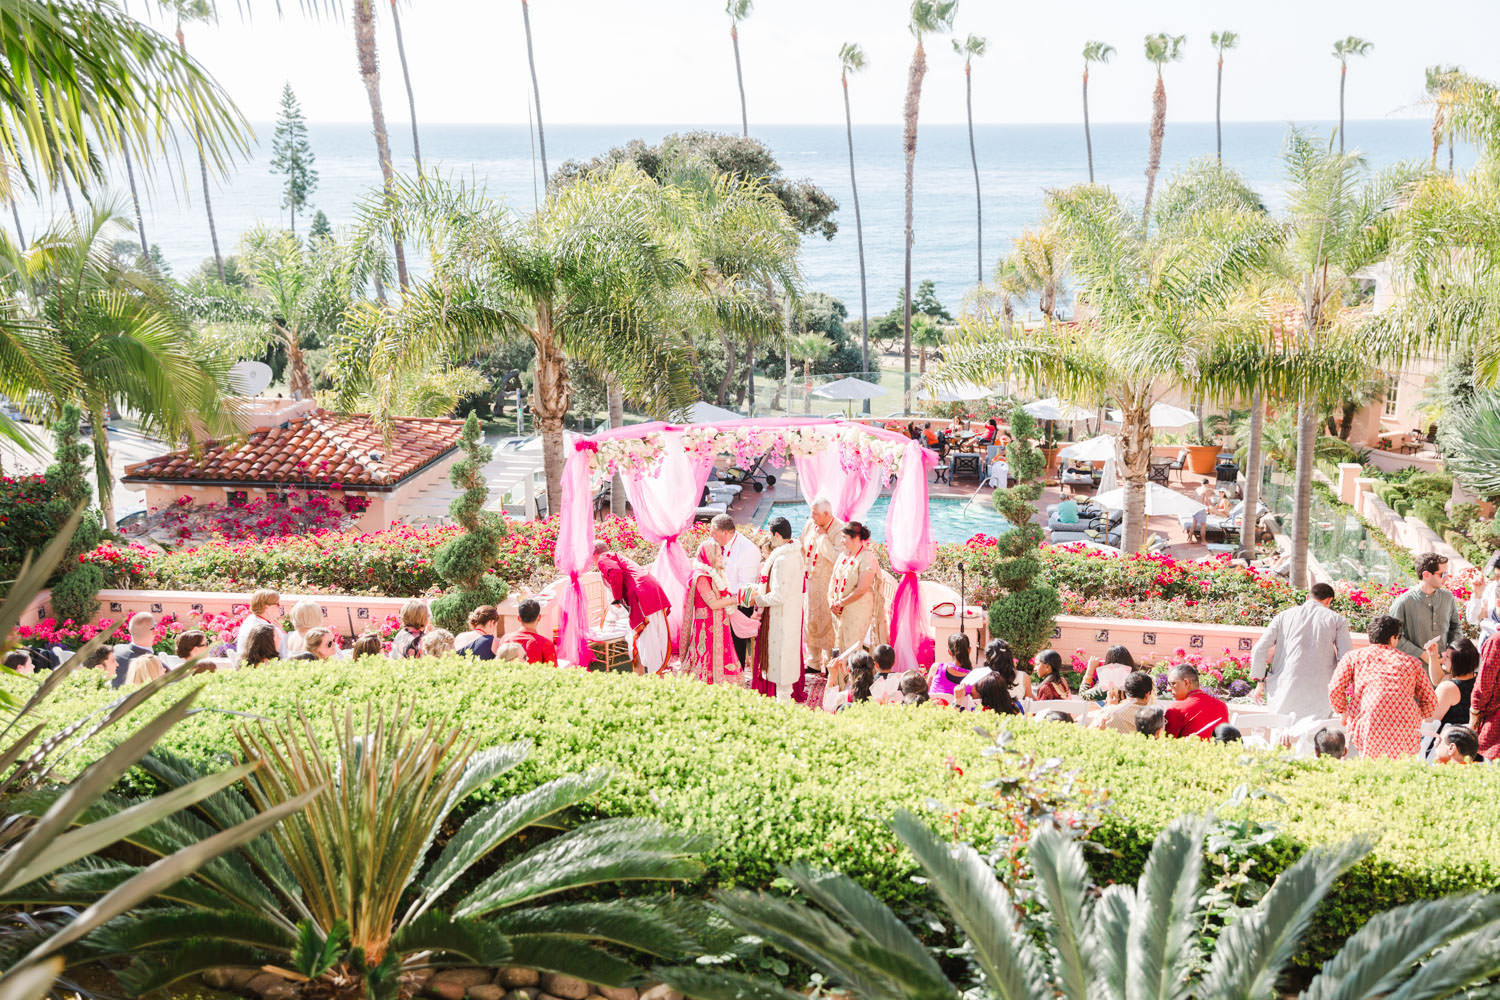 La Valencia Wedding Venue Ceremony in El Jardin, Cavin Elizabeth Photography